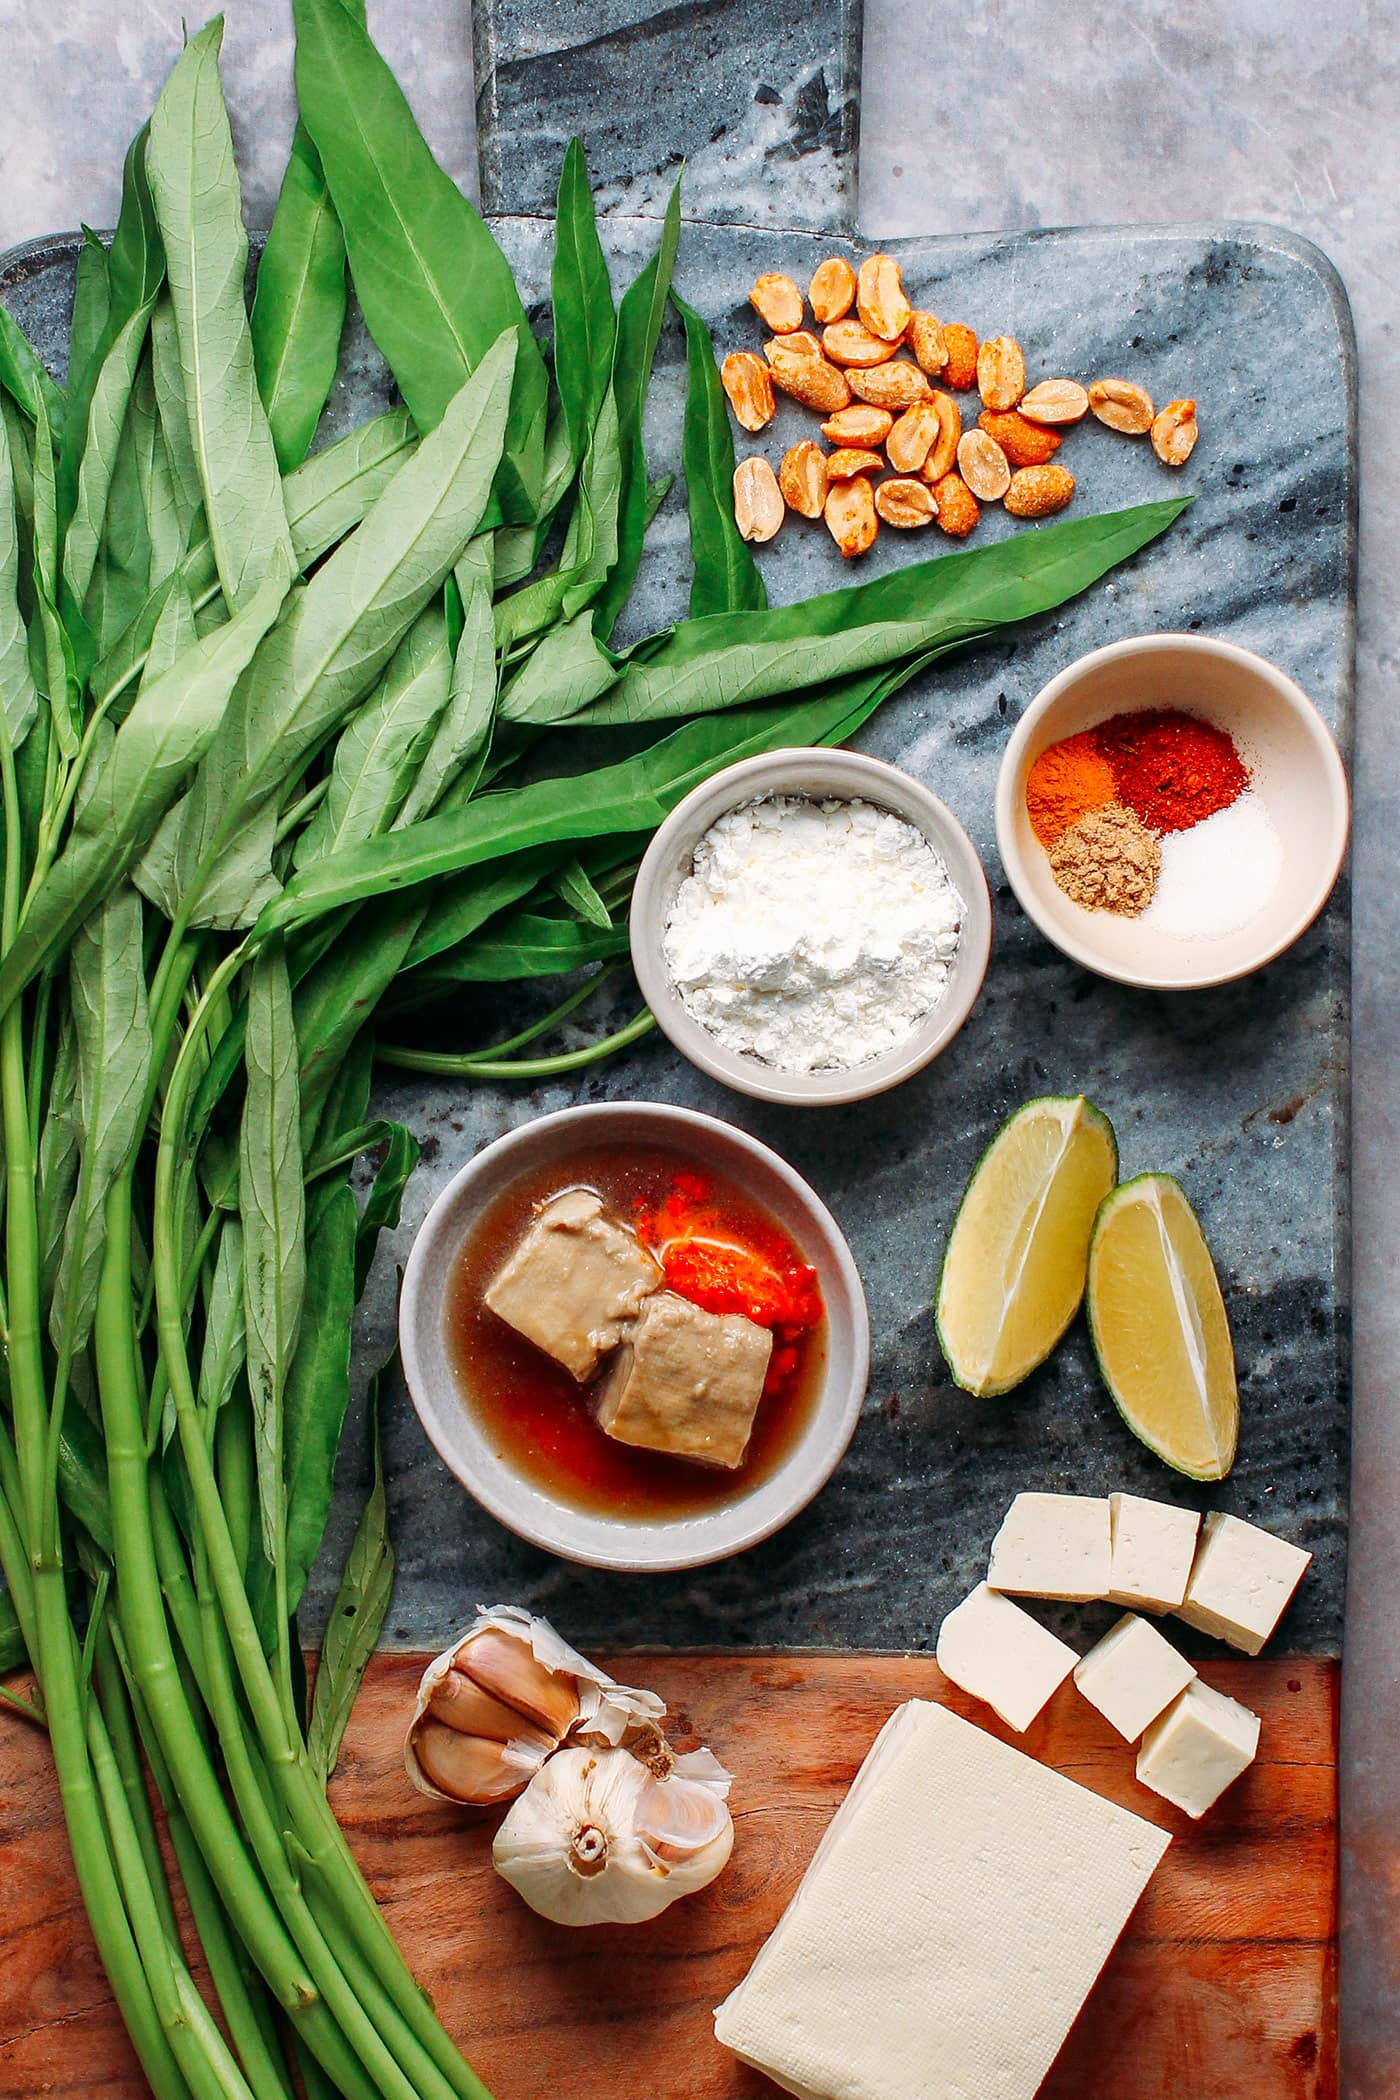 Garlic Morning Glory with Crispy Tofu